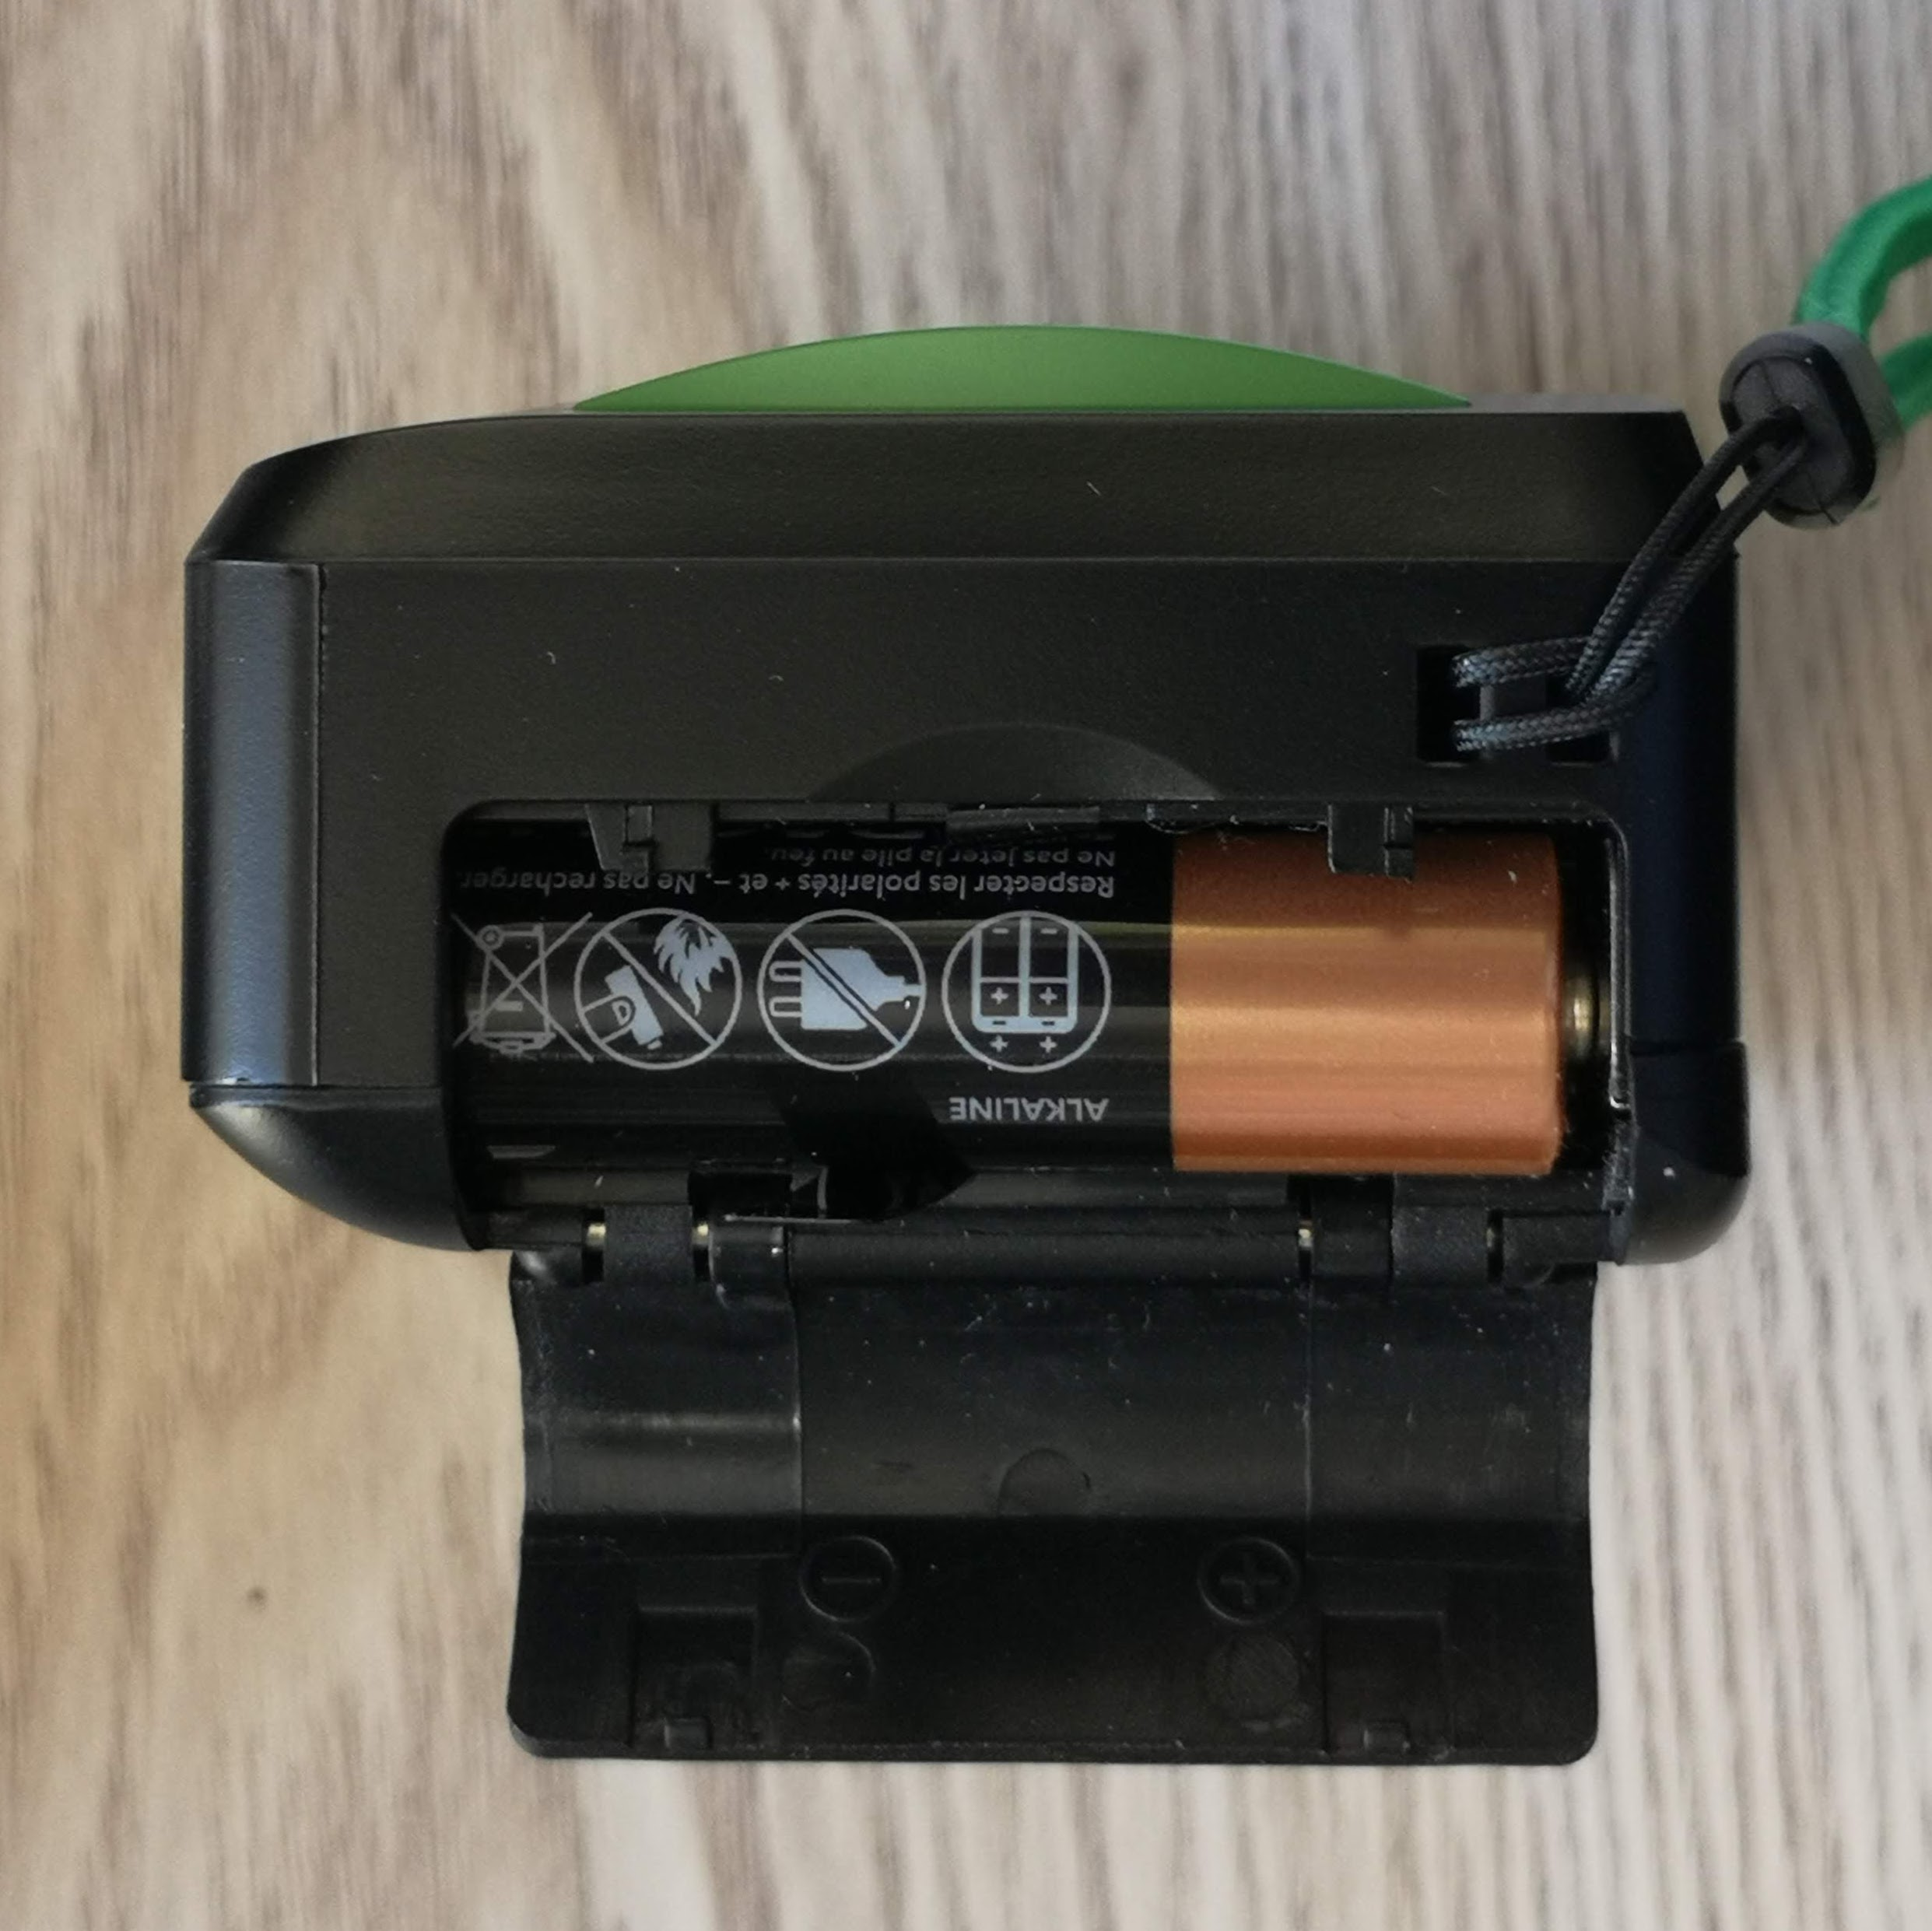 Battery compartment of EZ35